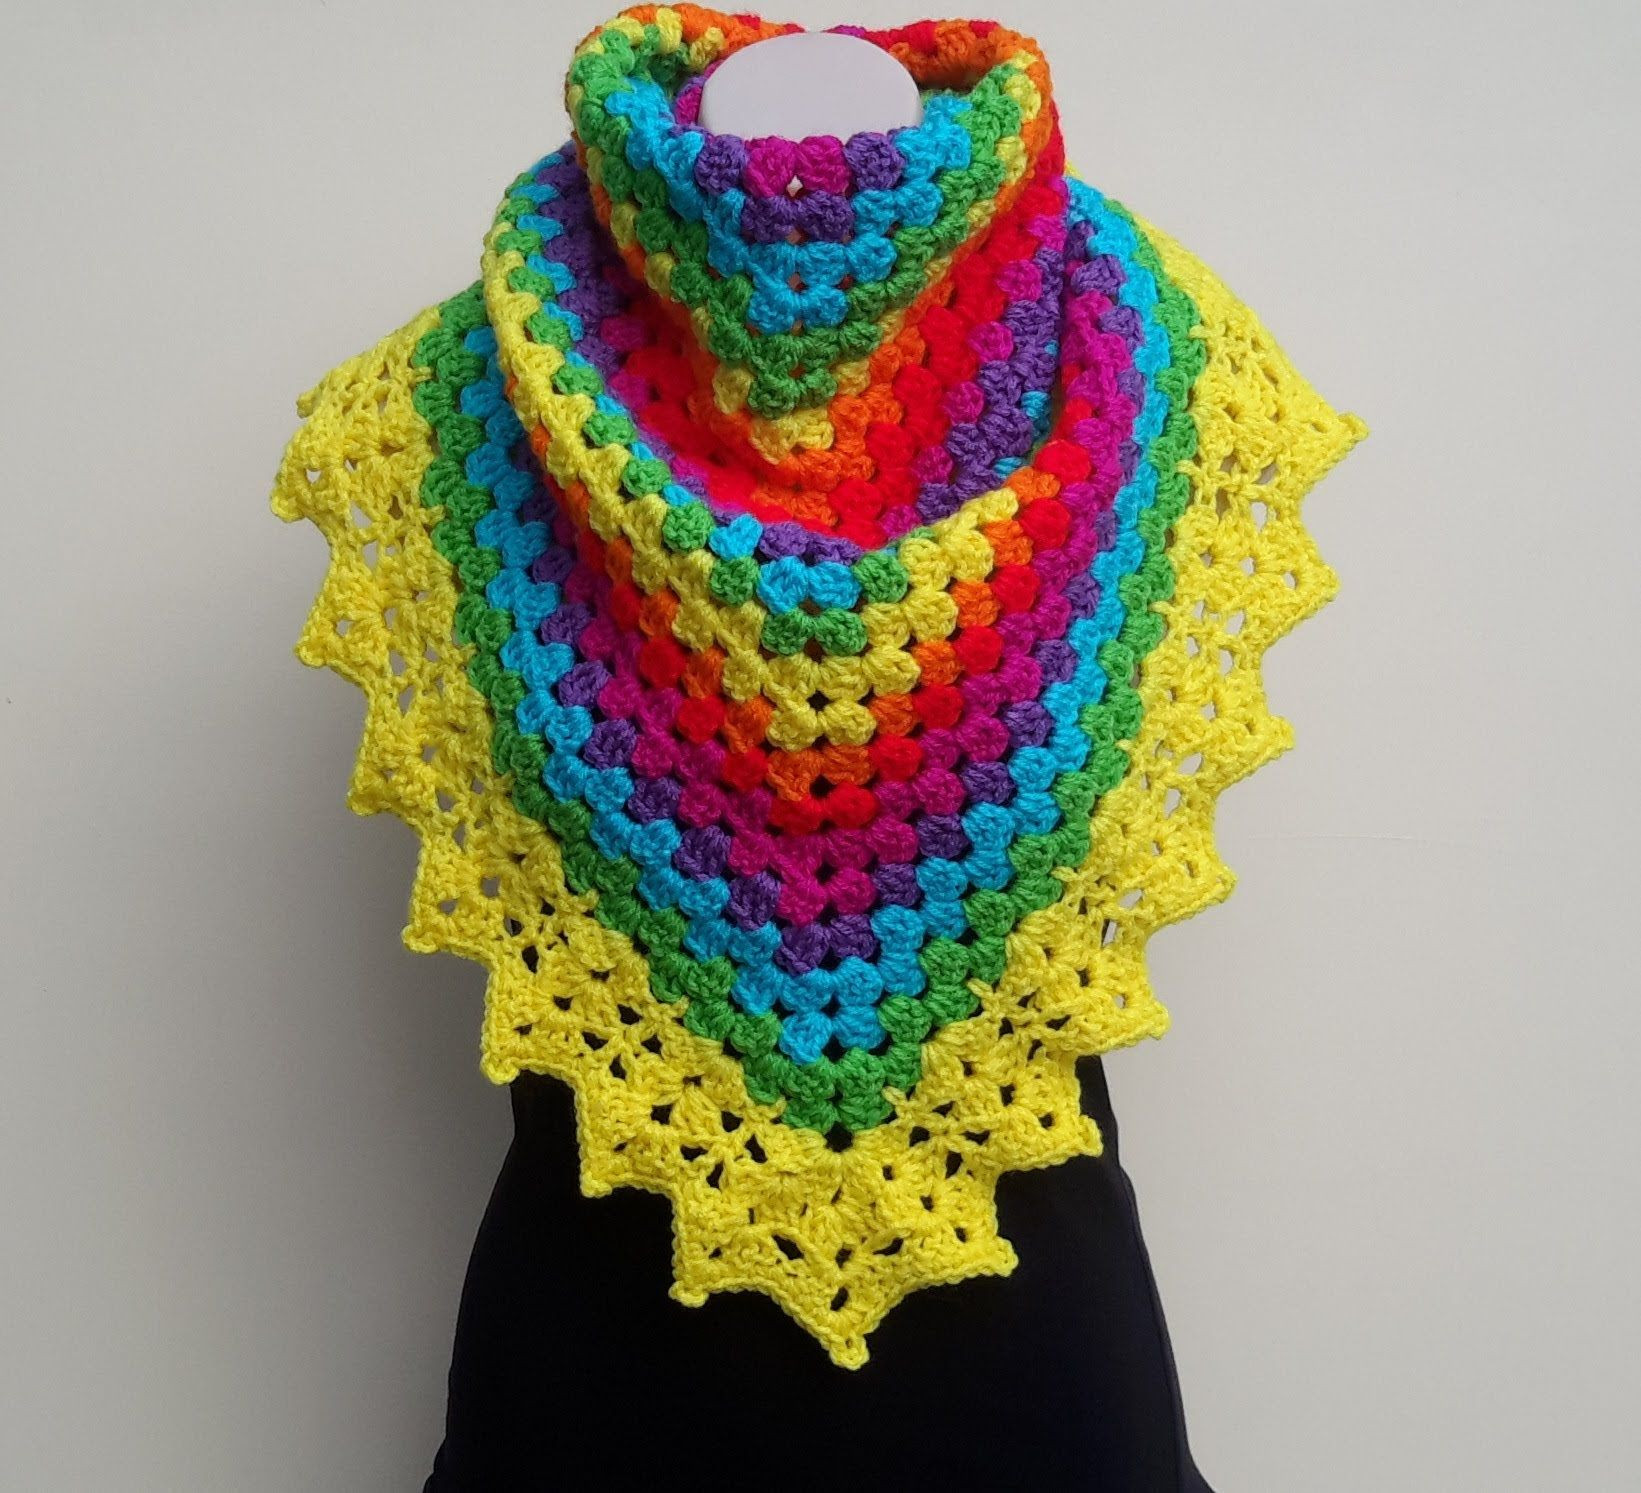 Fresh Crochet Rainbow Shawl Video Tutorial From Bobwilson123 Crochet Shawl Tutorial Of Attractive 40 Ideas Crochet Shawl Tutorial